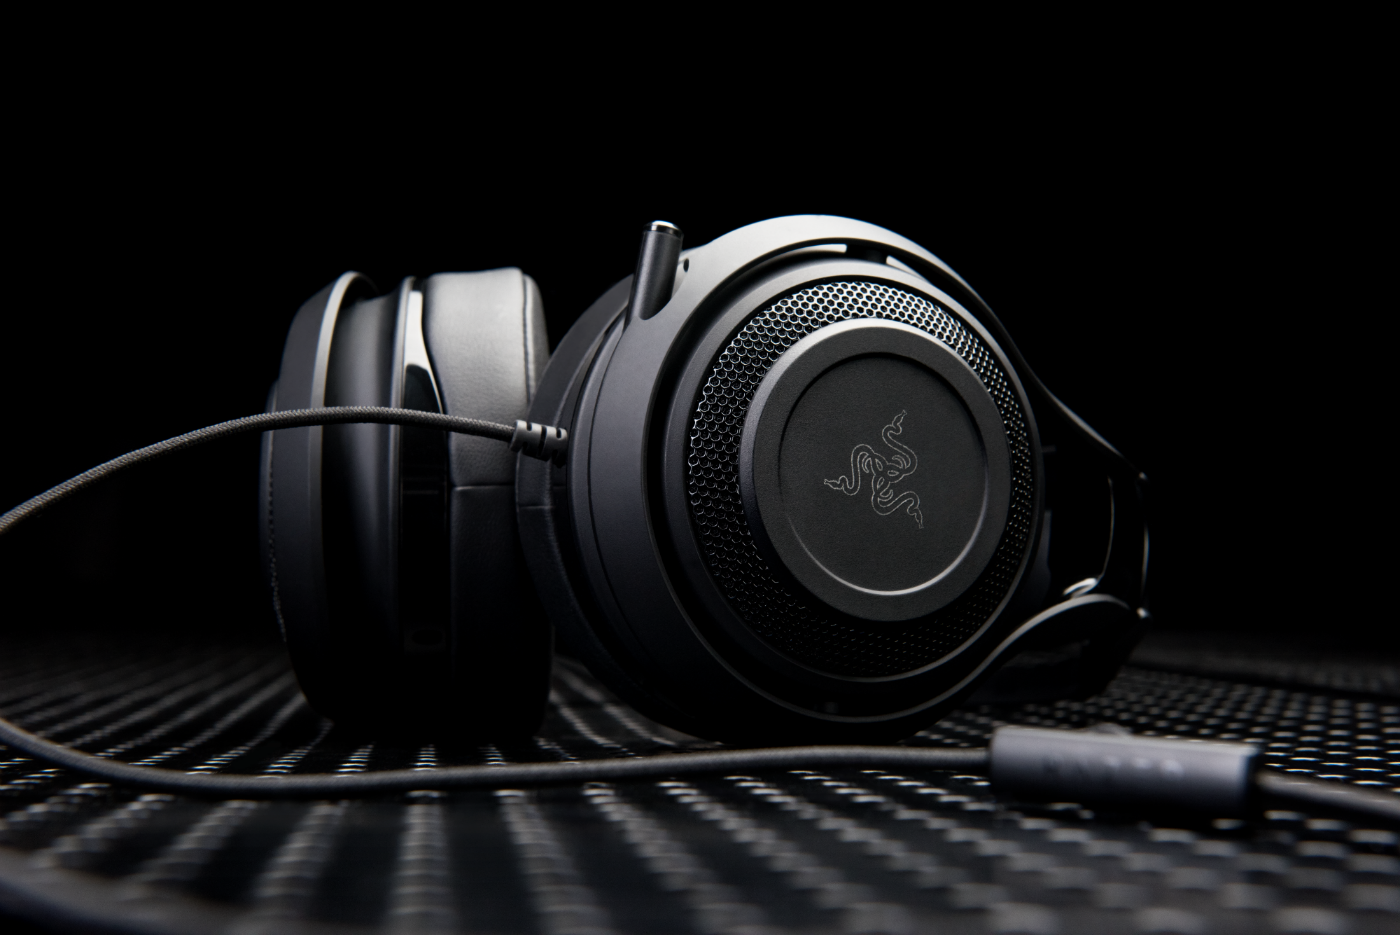 Razer_ManOWar_Wired_2